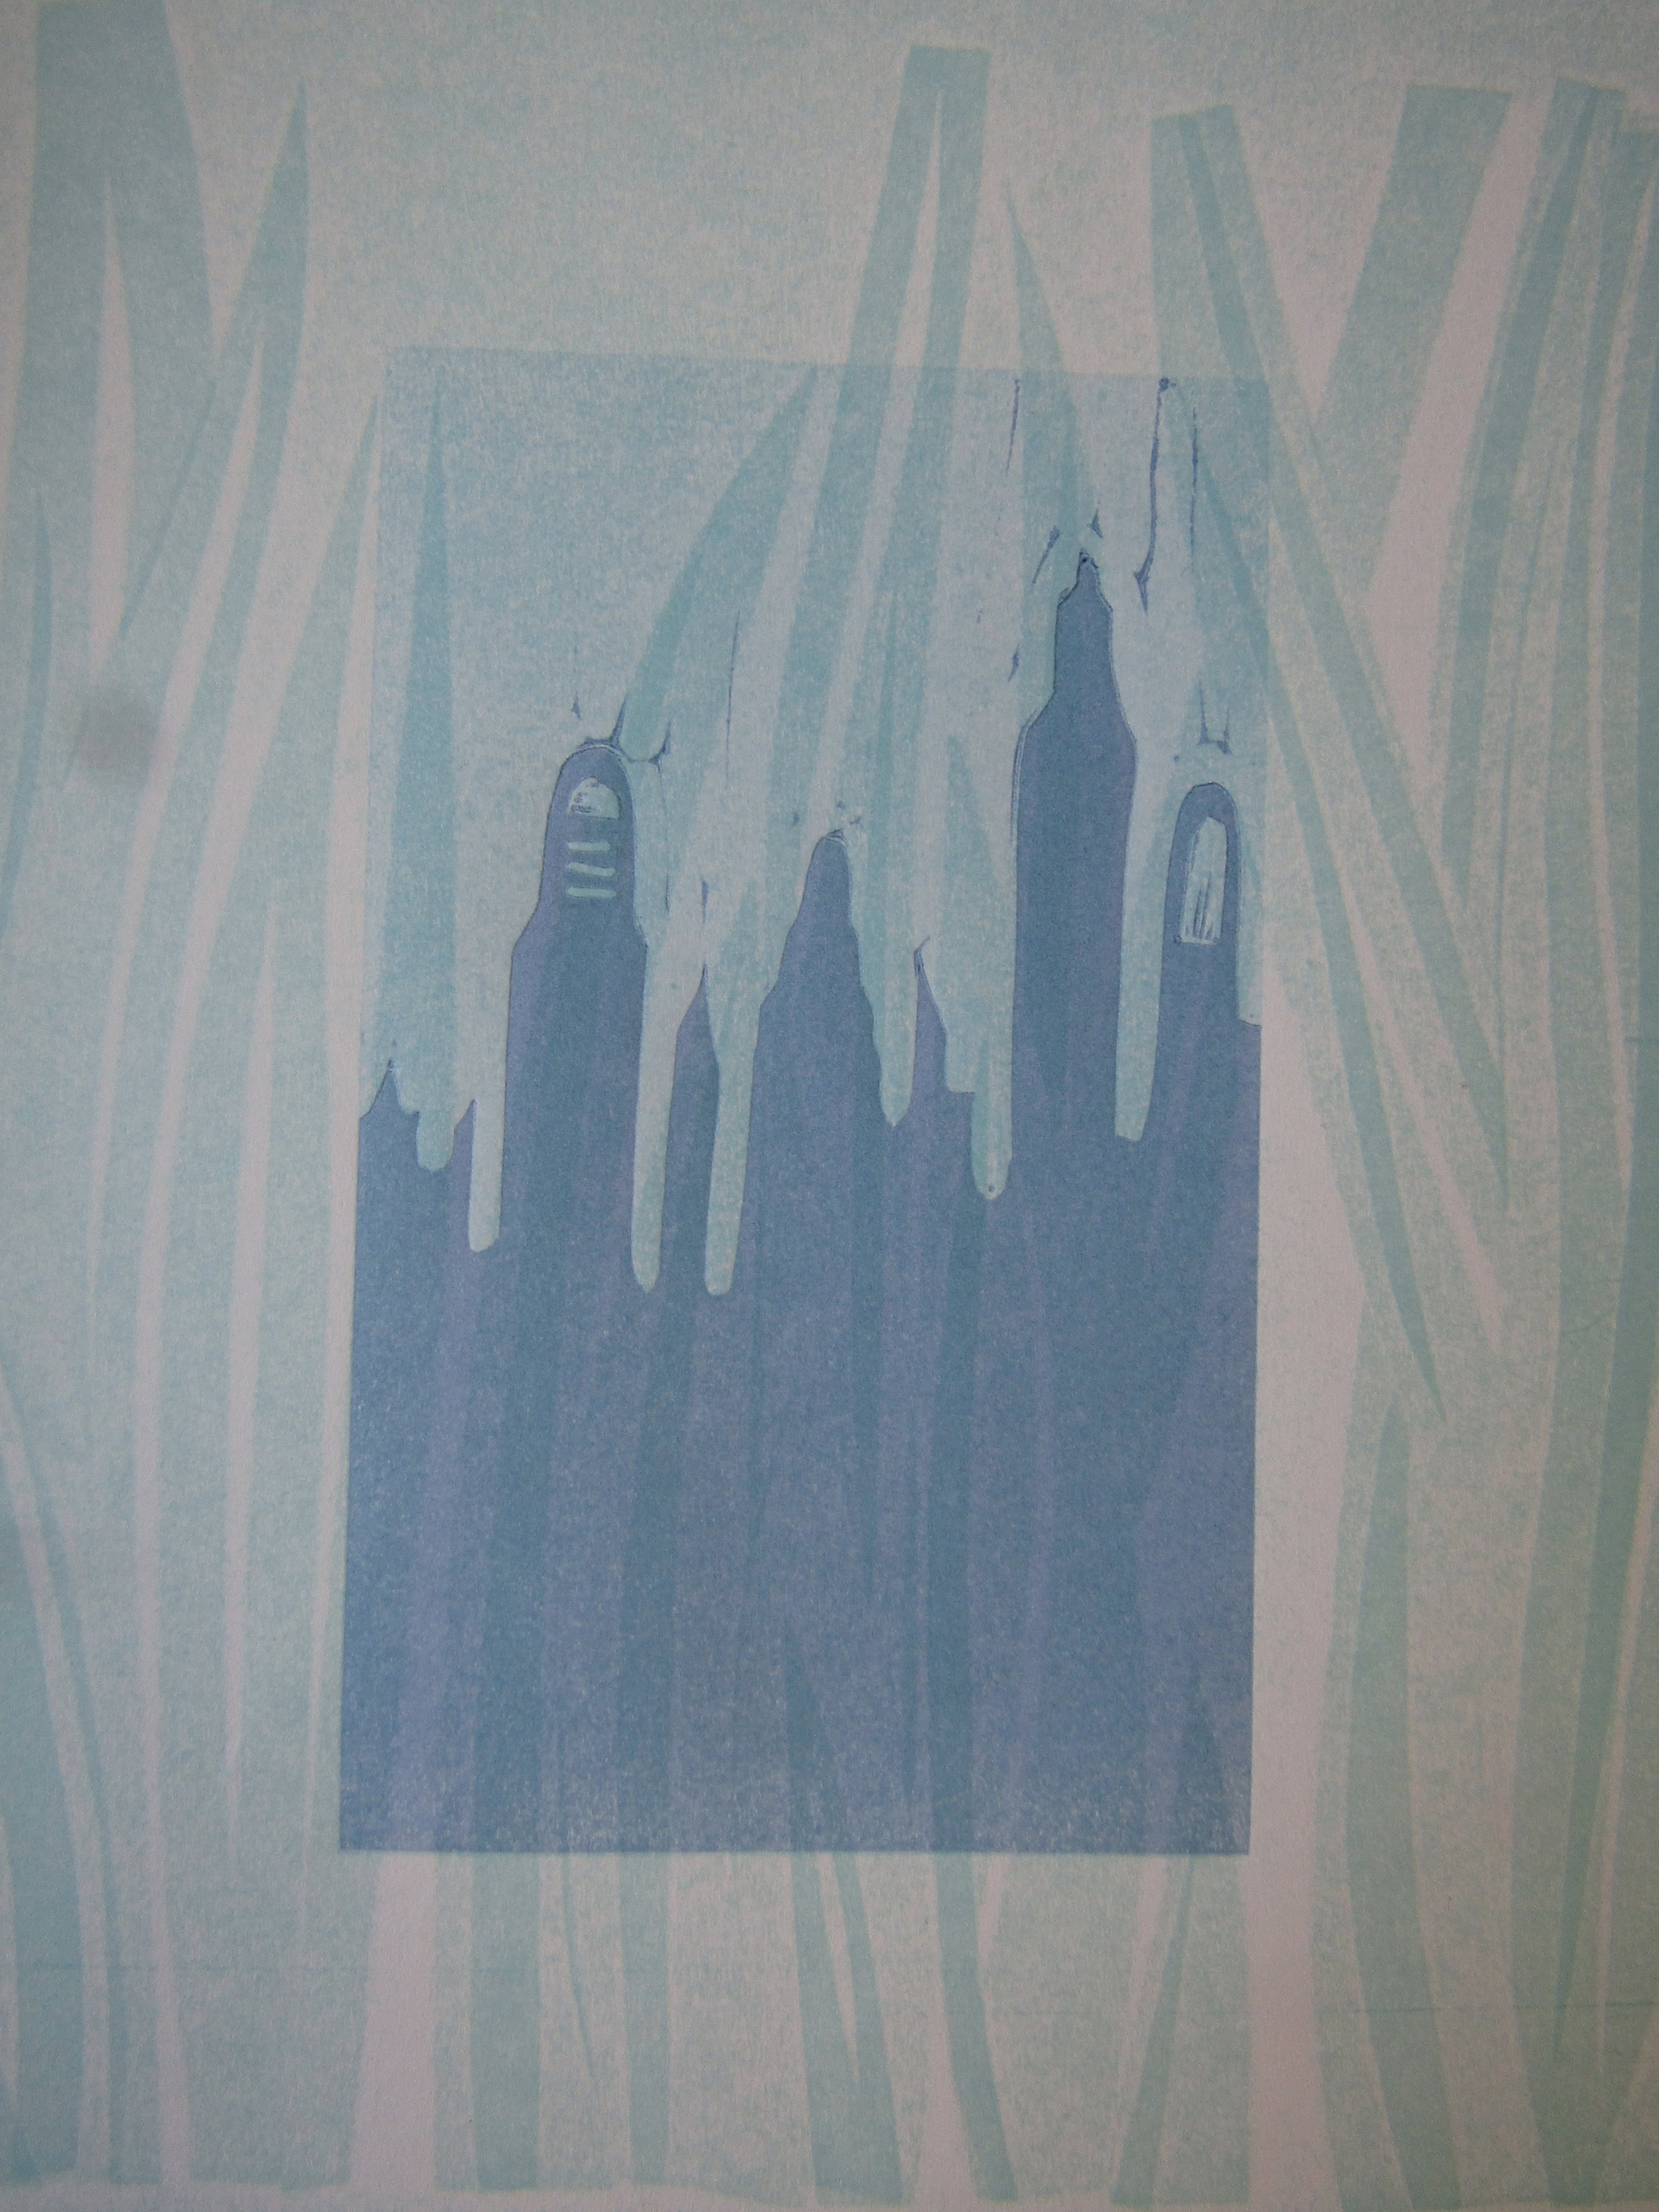 Cityscape block printed on the iris leaves.